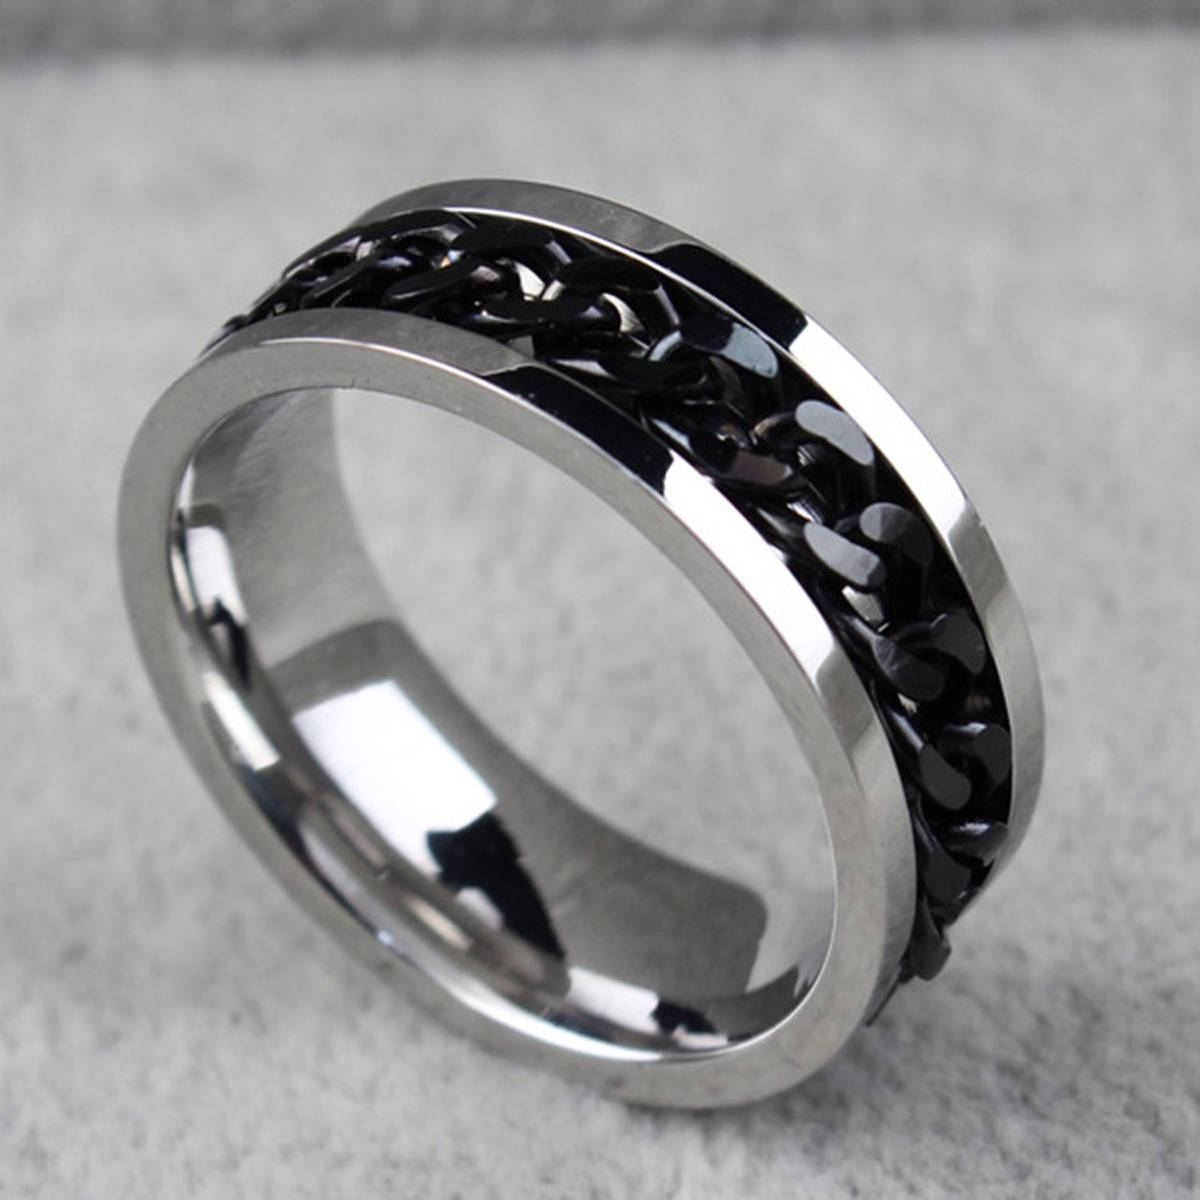 Compare Prices On Mens Chain Ring  Online Shopping/buy Low Price Inside Men's Spinning Wedding Bands (View 2 of 15)